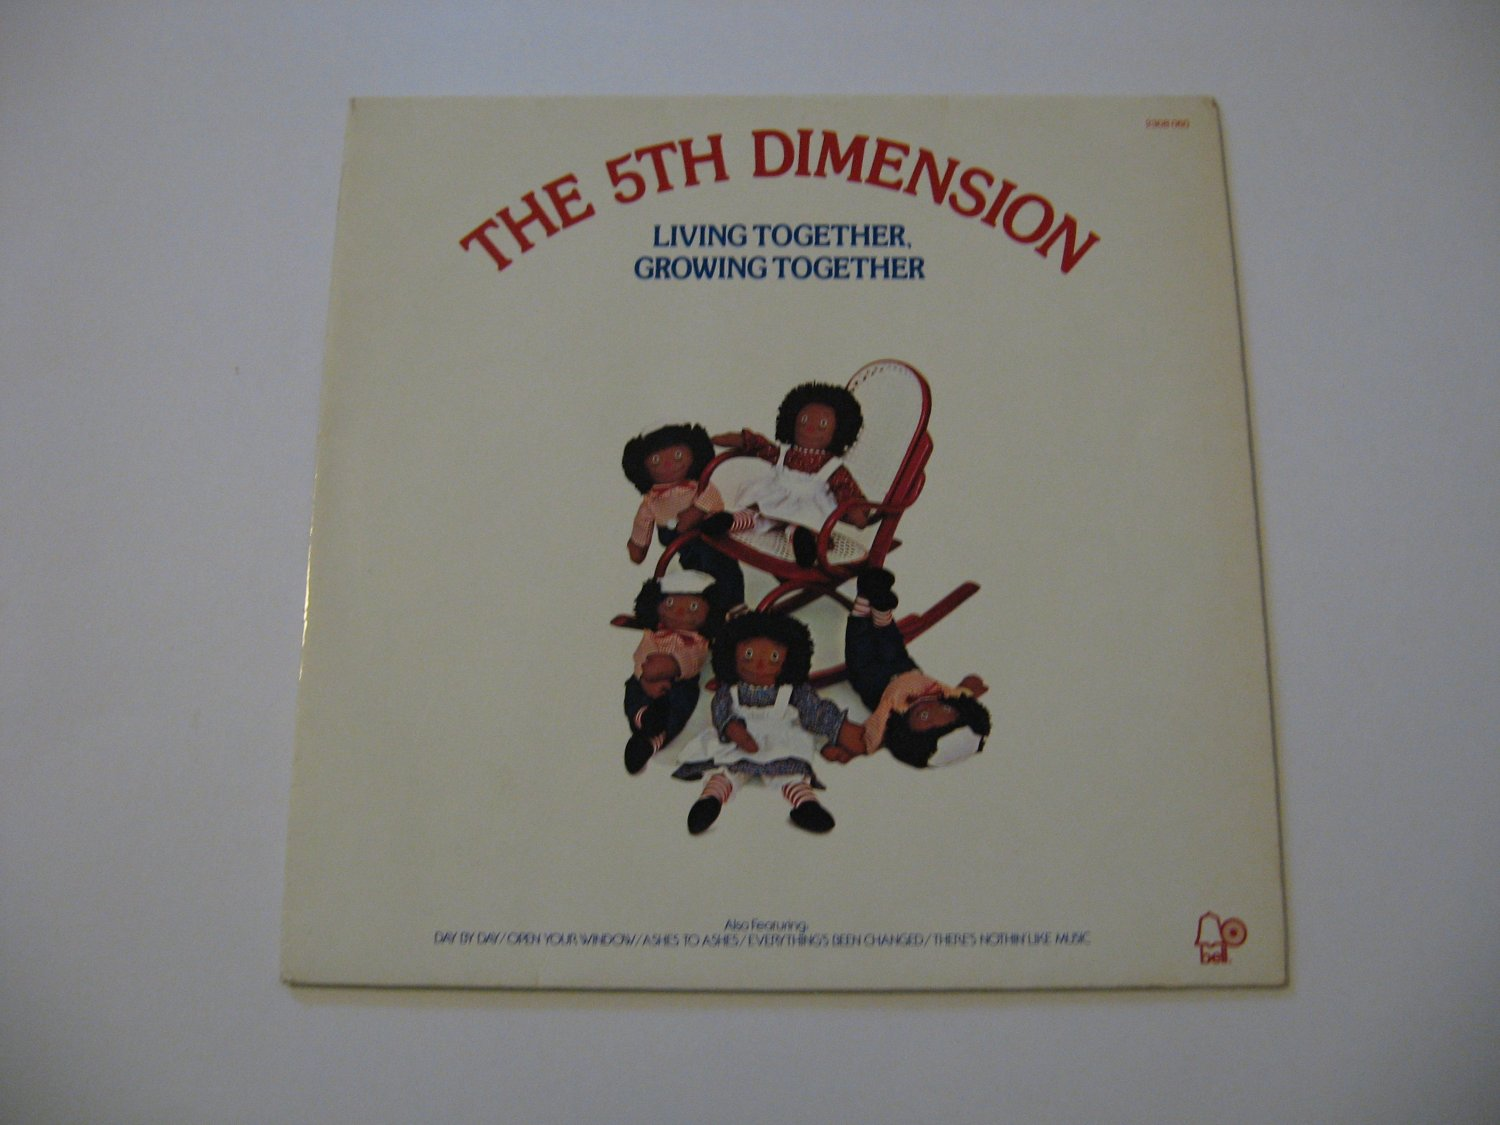 The 5th Dimension  - German Import - Living Together Growing Together - 1973  (Vinyl Record)